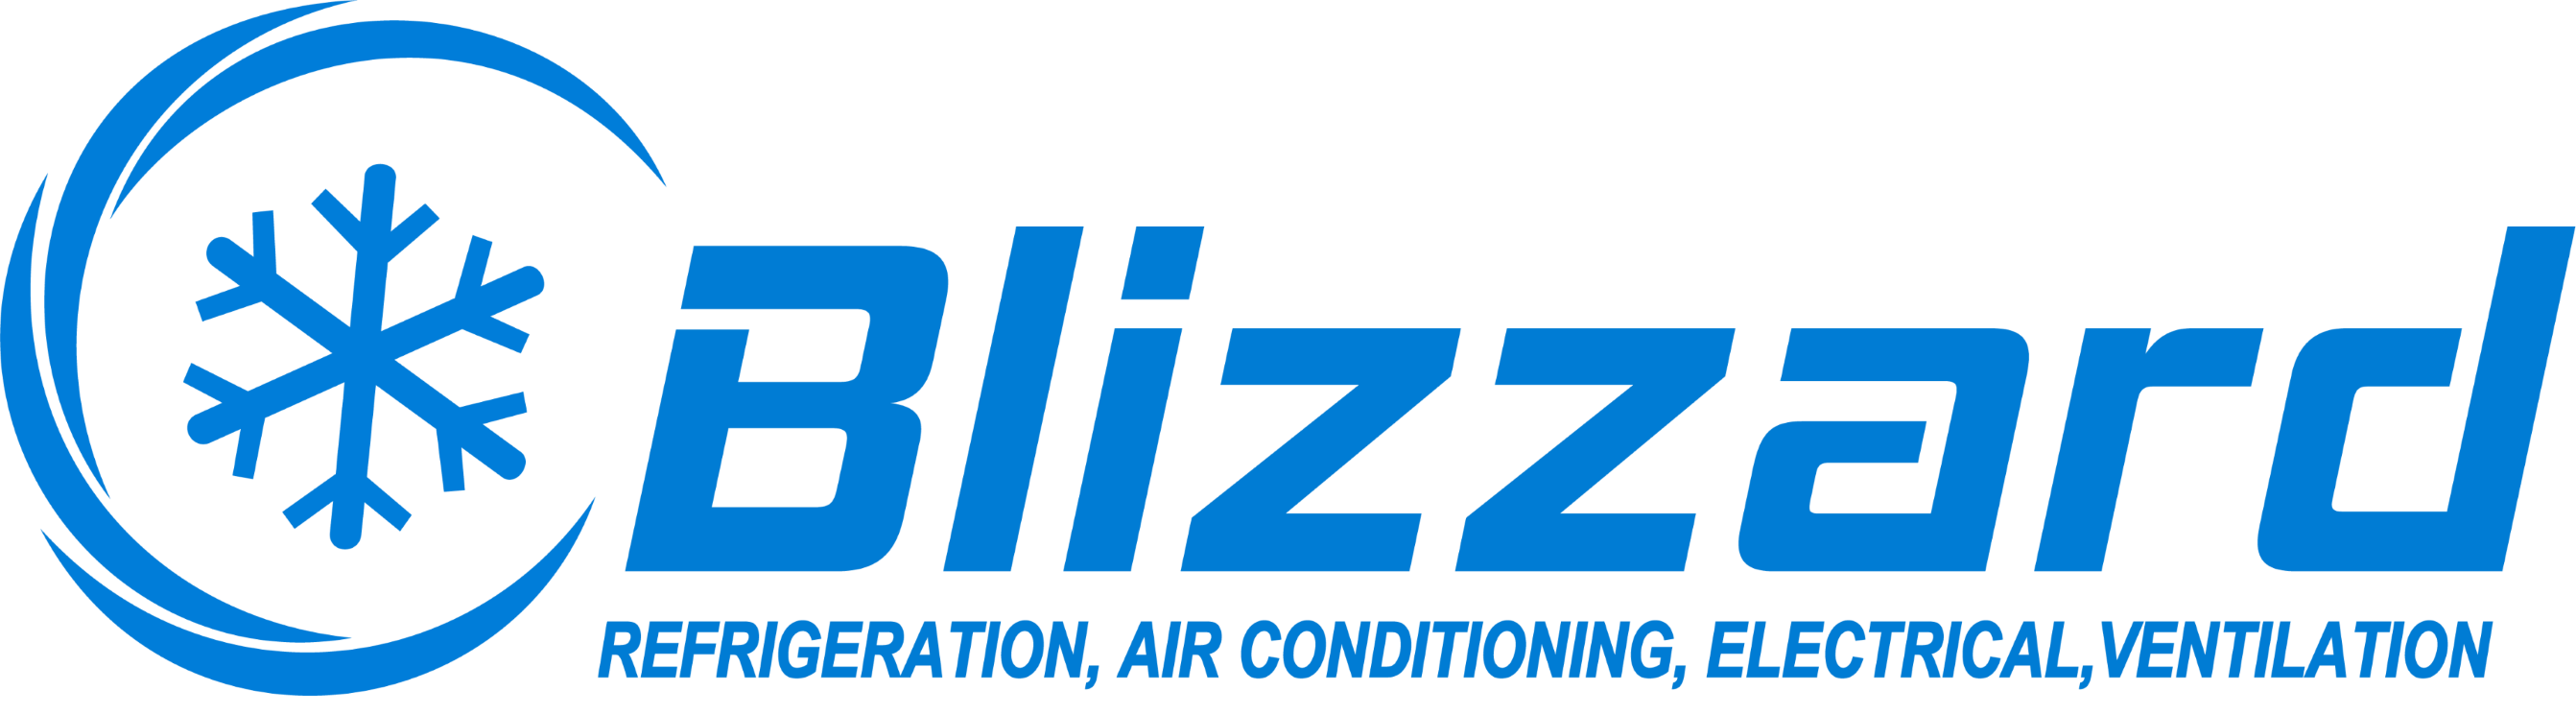 Blizzard – Air conditioning - Refrigeration - Electrical - Ventilation